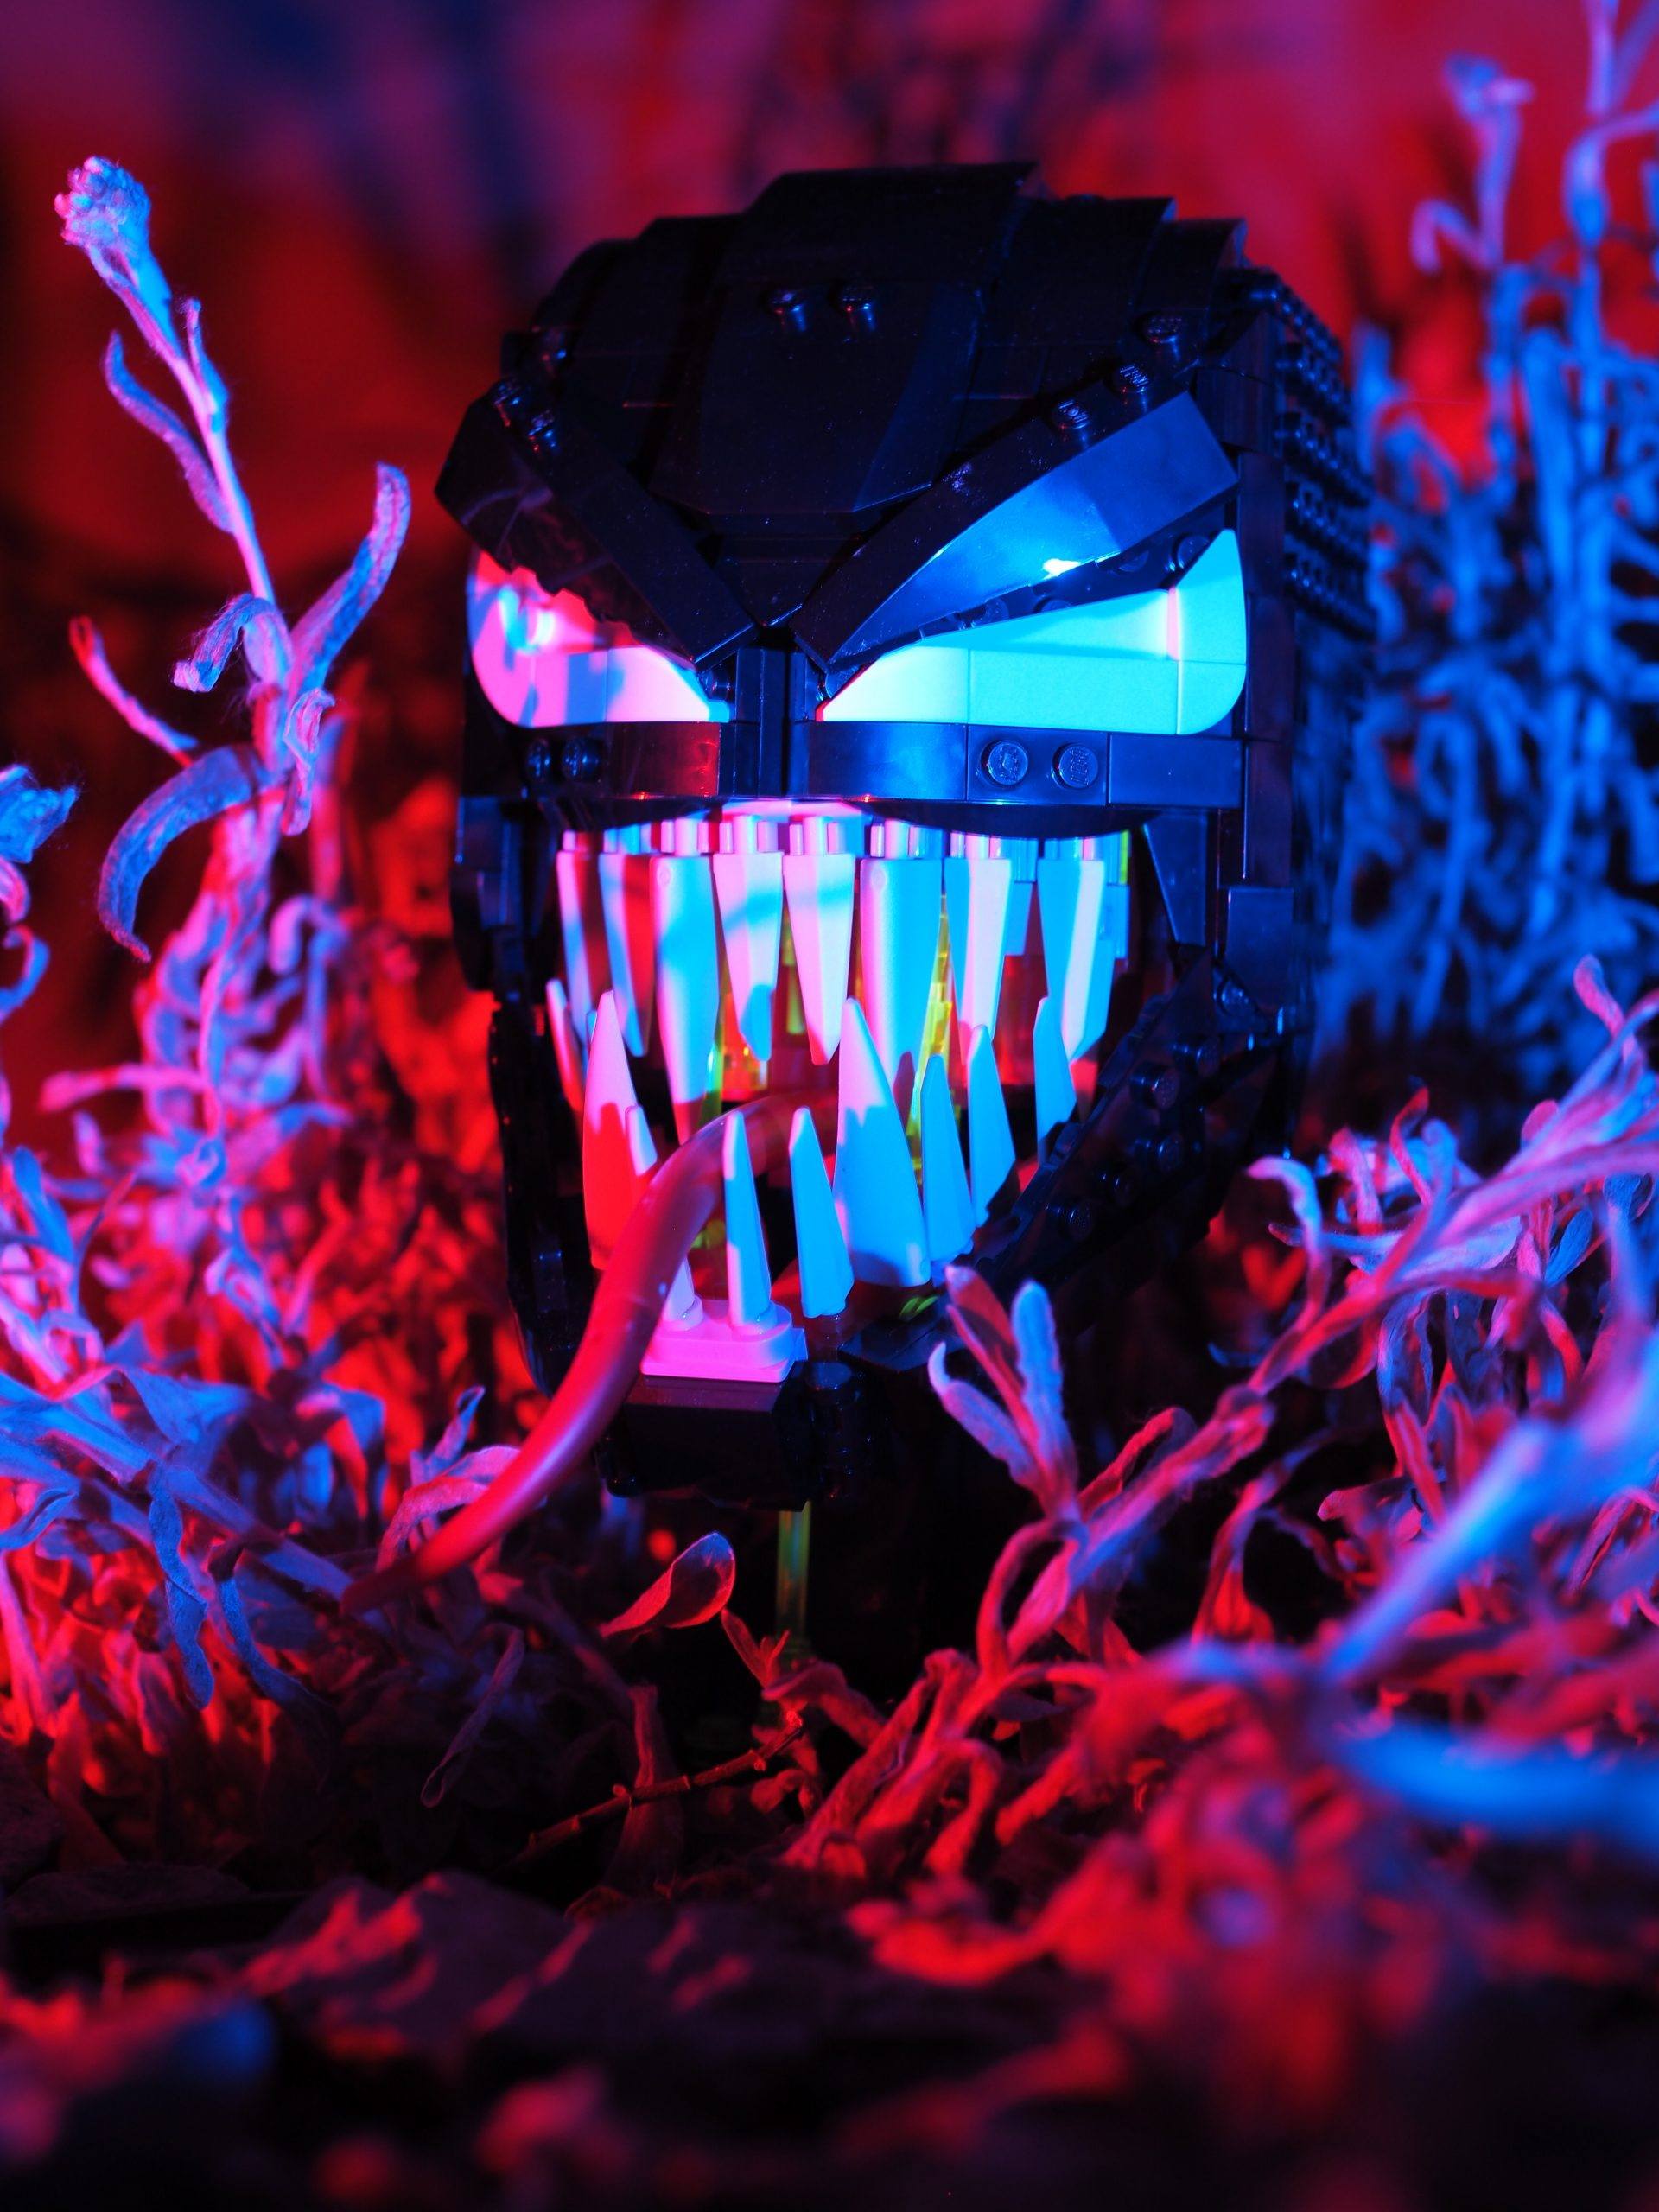 A lego sculpture of Venom in some underbrush with fancy lighting to make it look more scary.